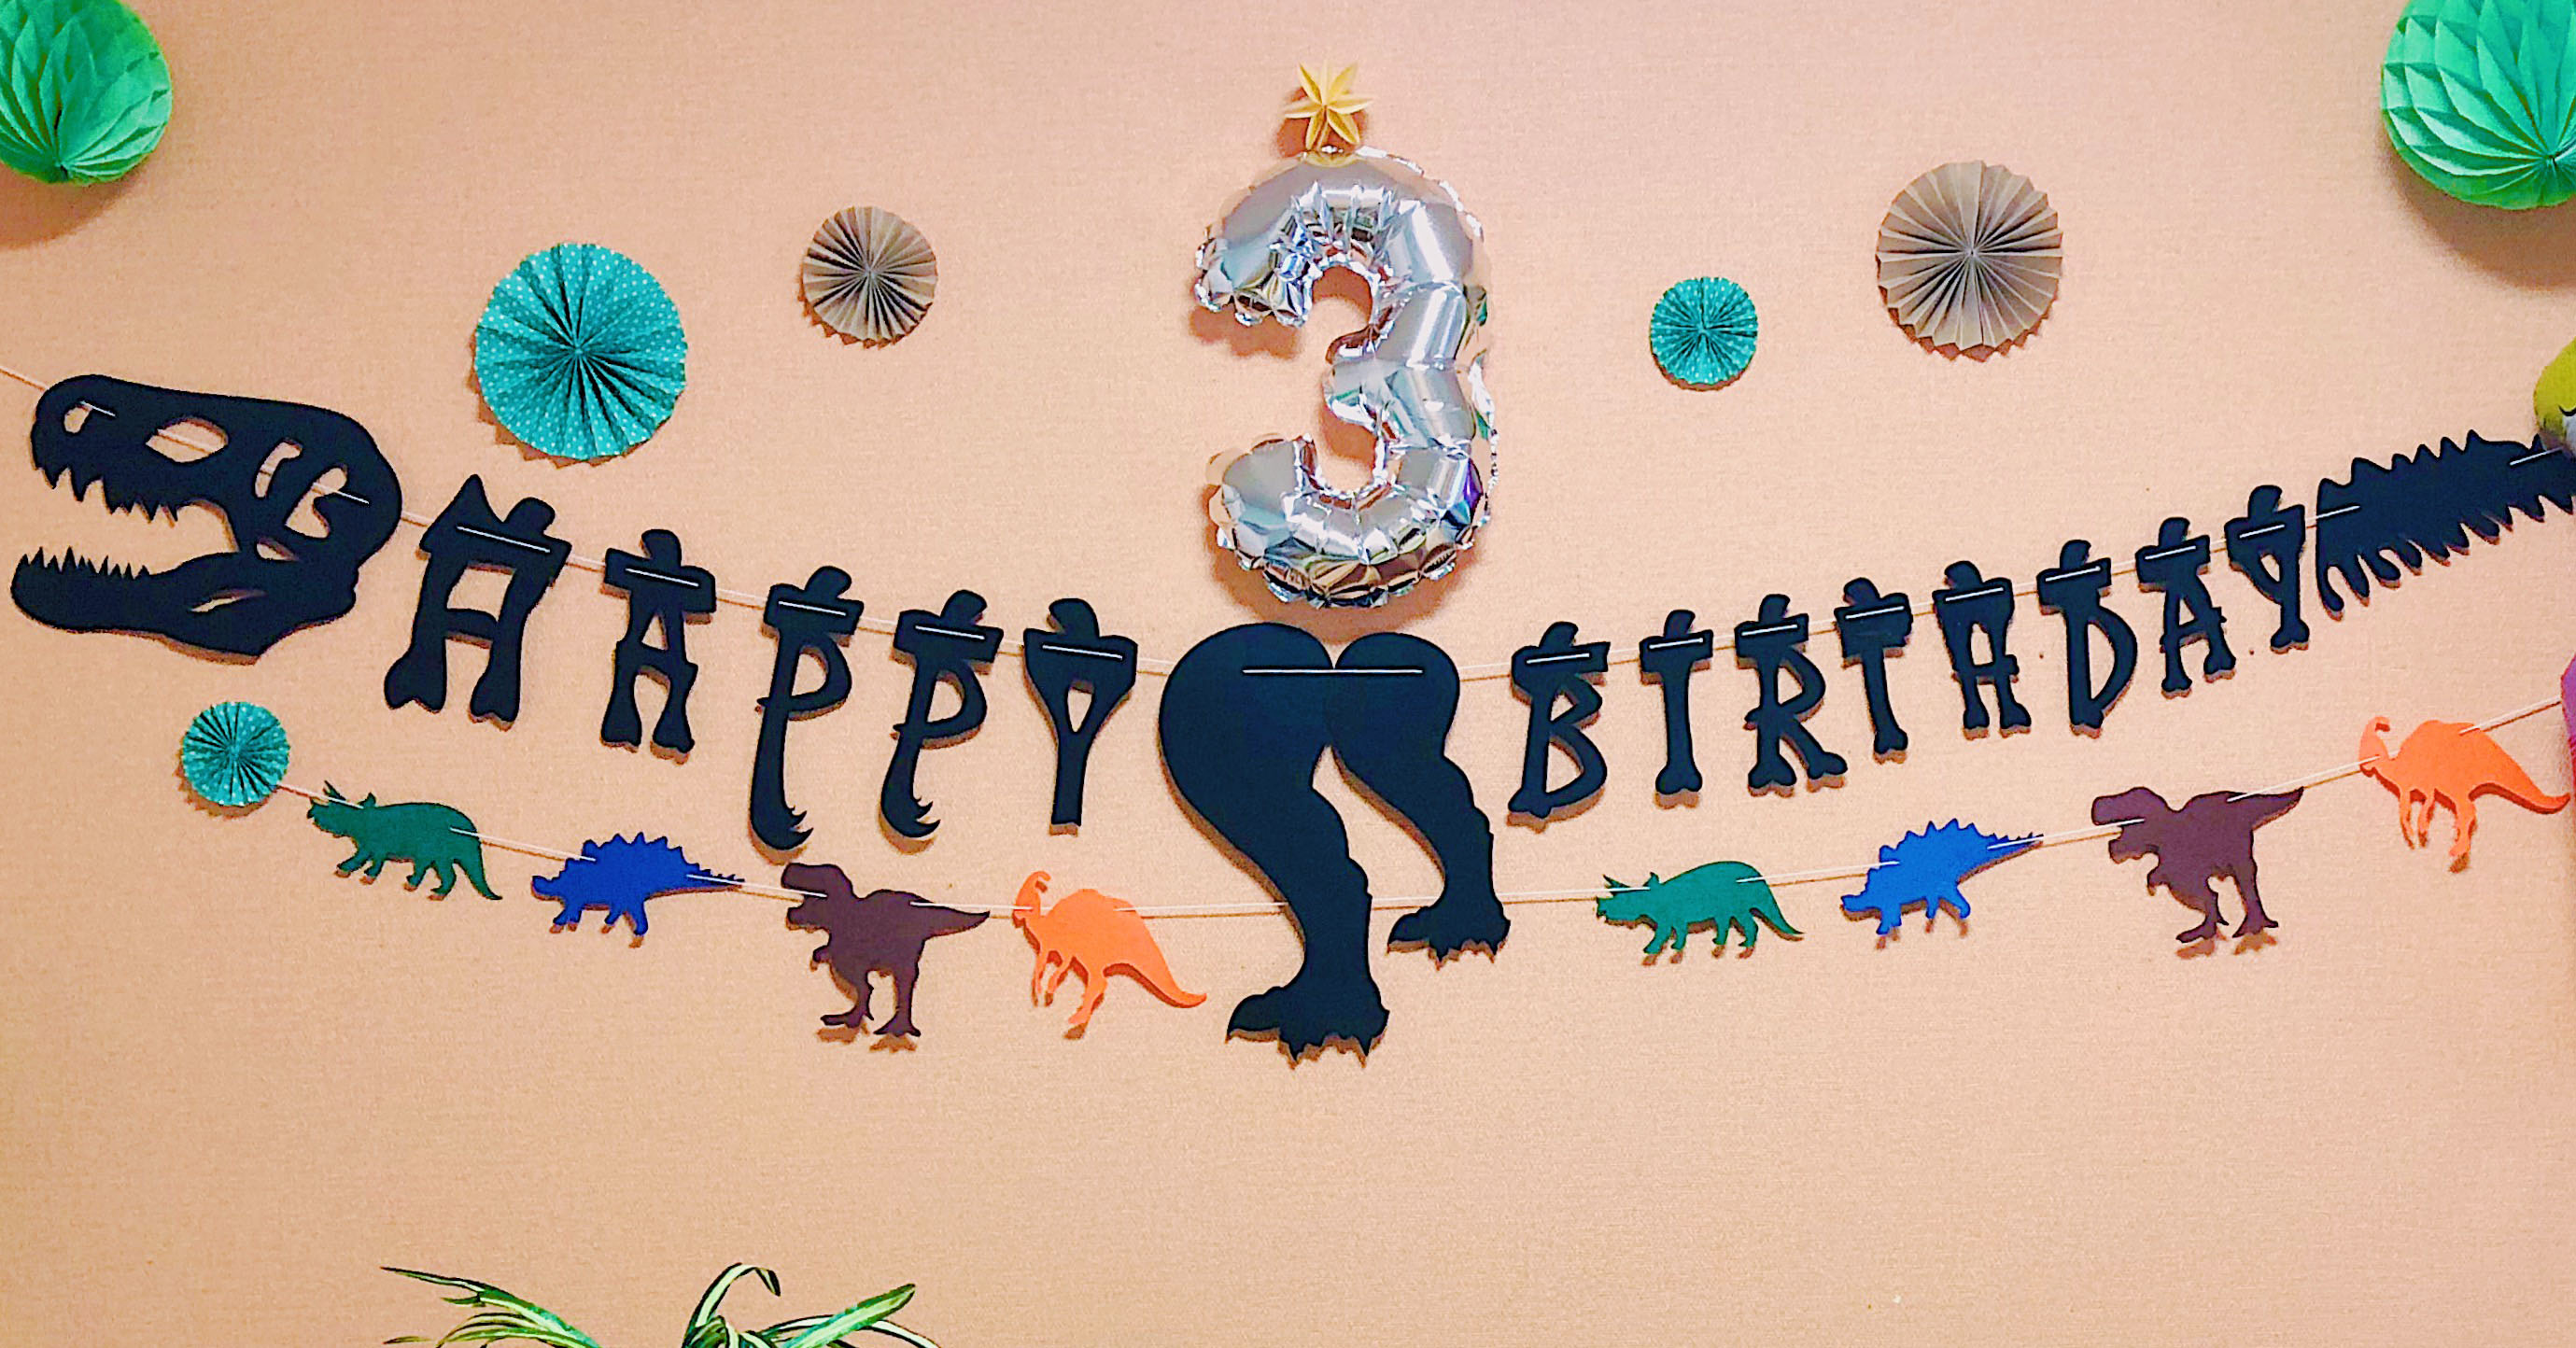 A JURASSIC BIRTHDAY WITH DINOS